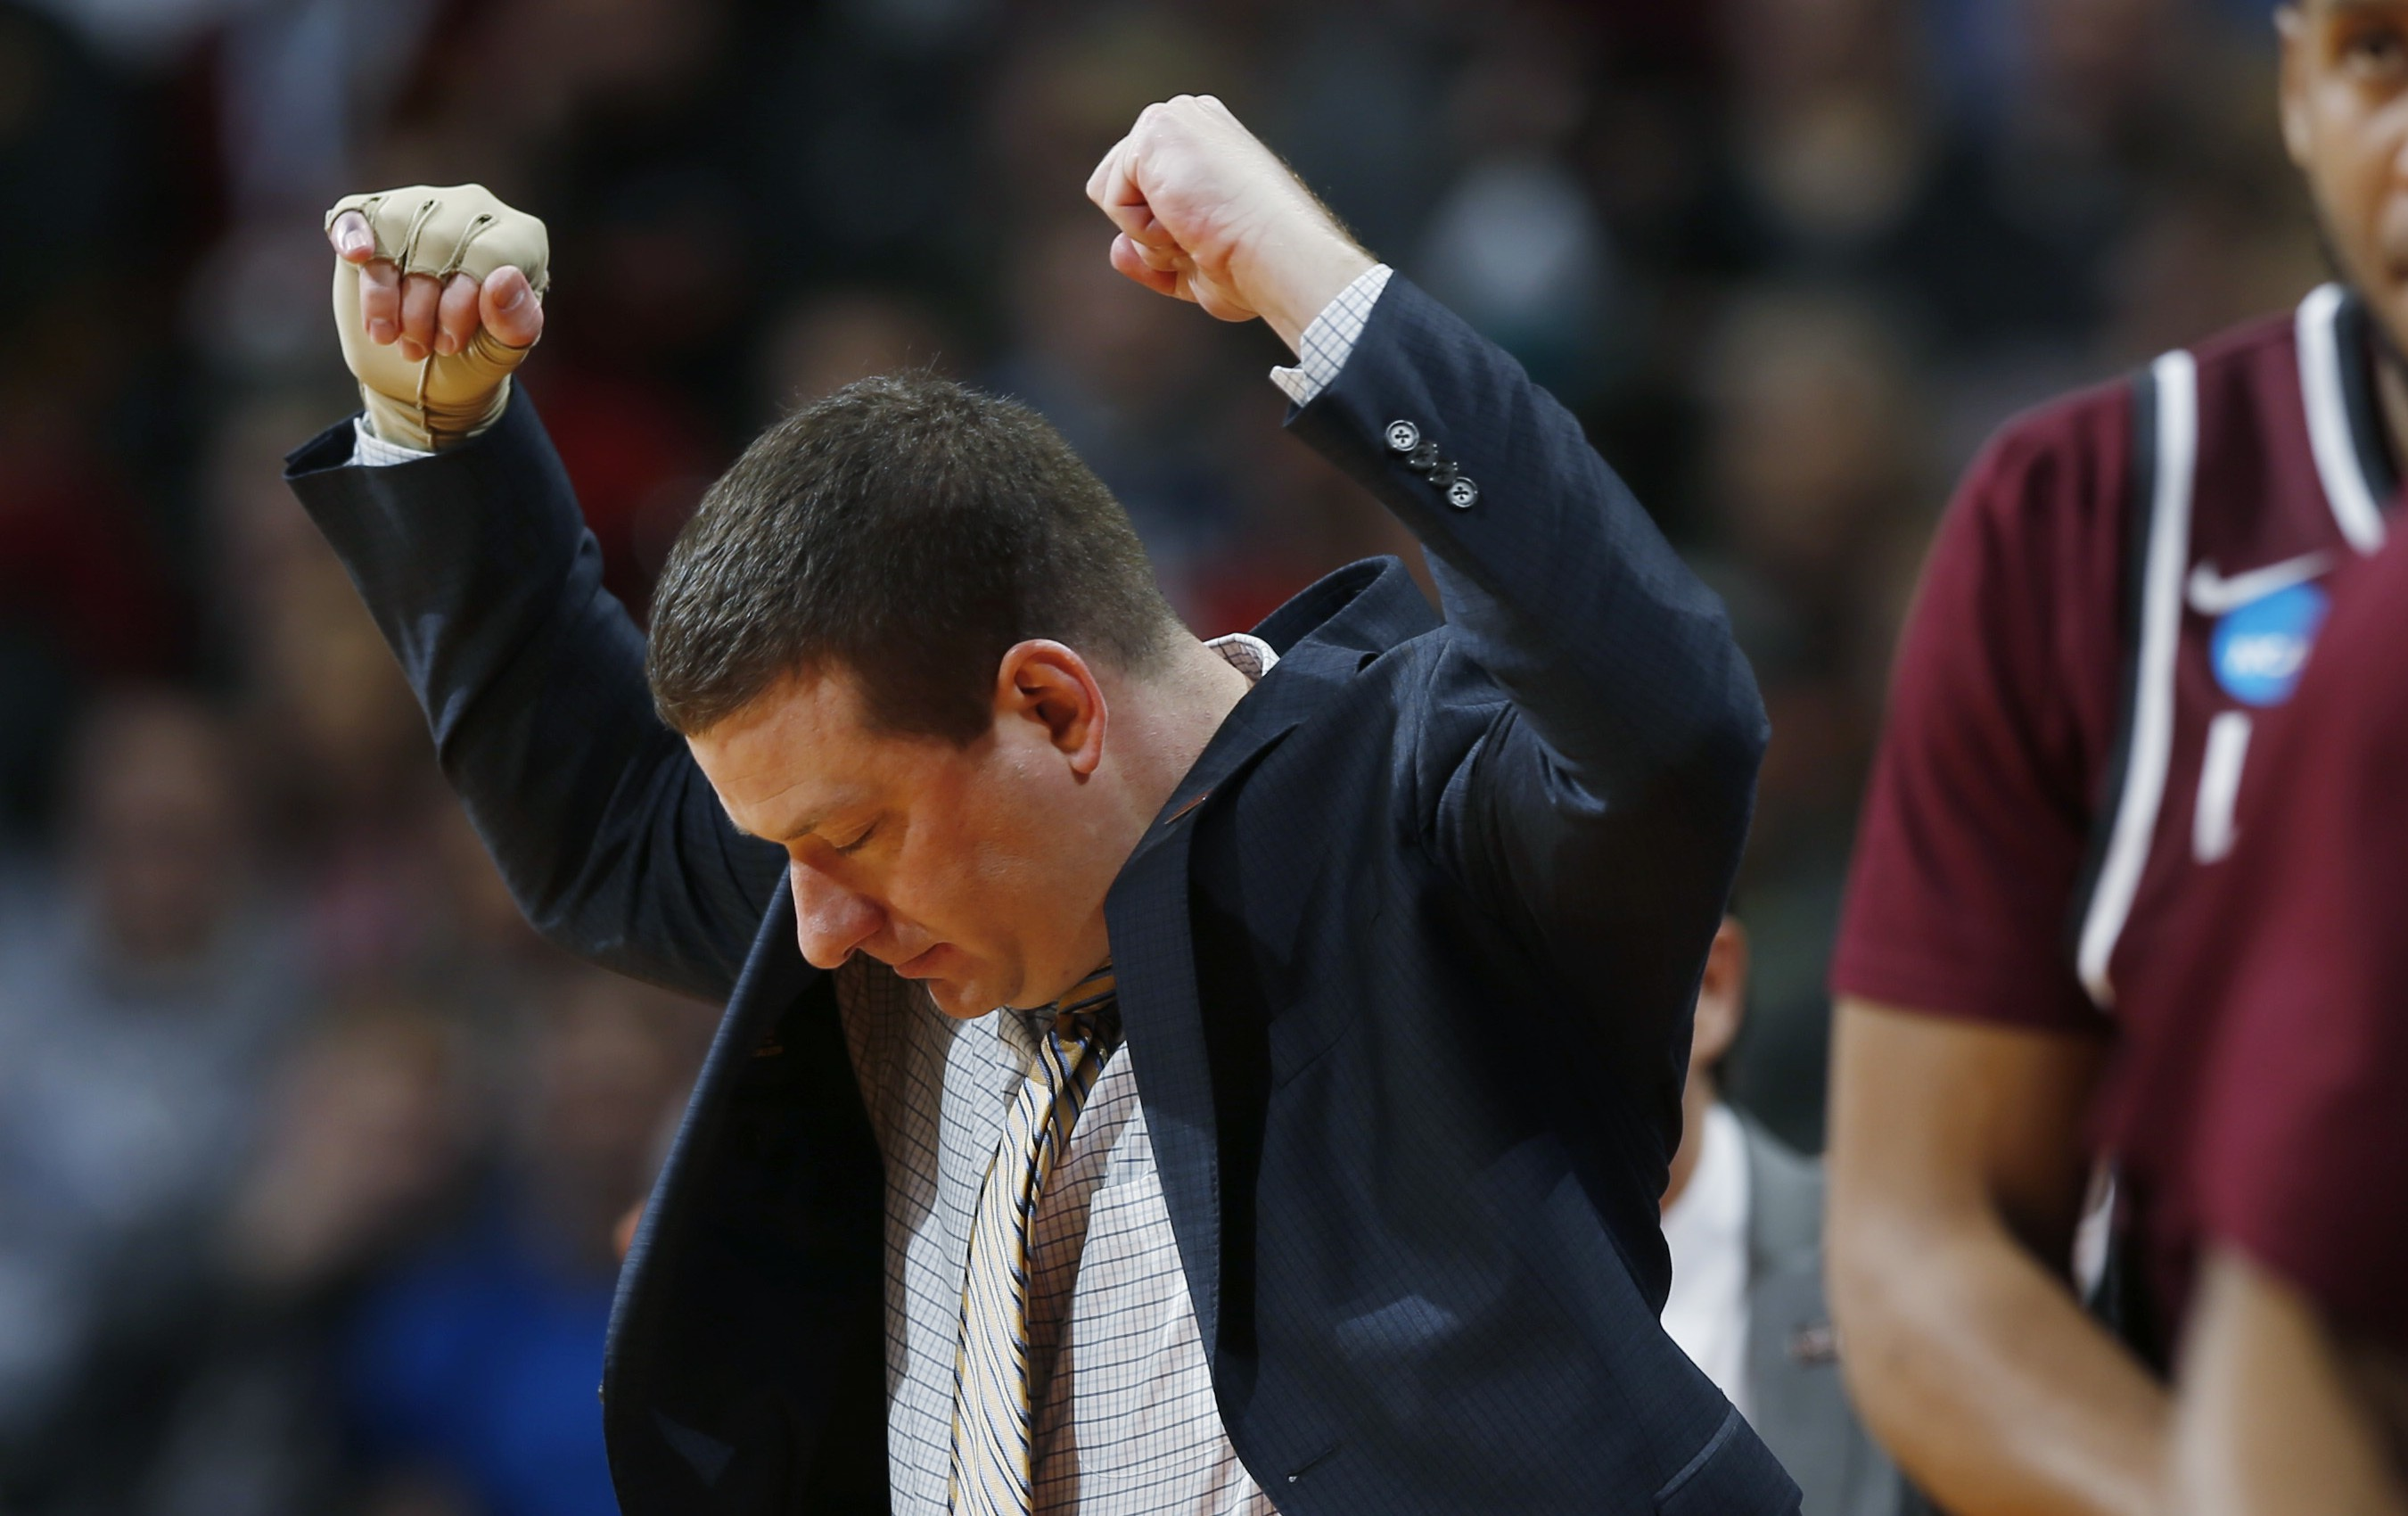 Arkansas Little Rock head coach Chris Beard reacts after his team draws a foul against Iowa State during the first half of a second-round men's college basketball game Saturday, March 19, 2016, in the NCAA Tournament in Denver. (AP Photo/David Zalubowski)